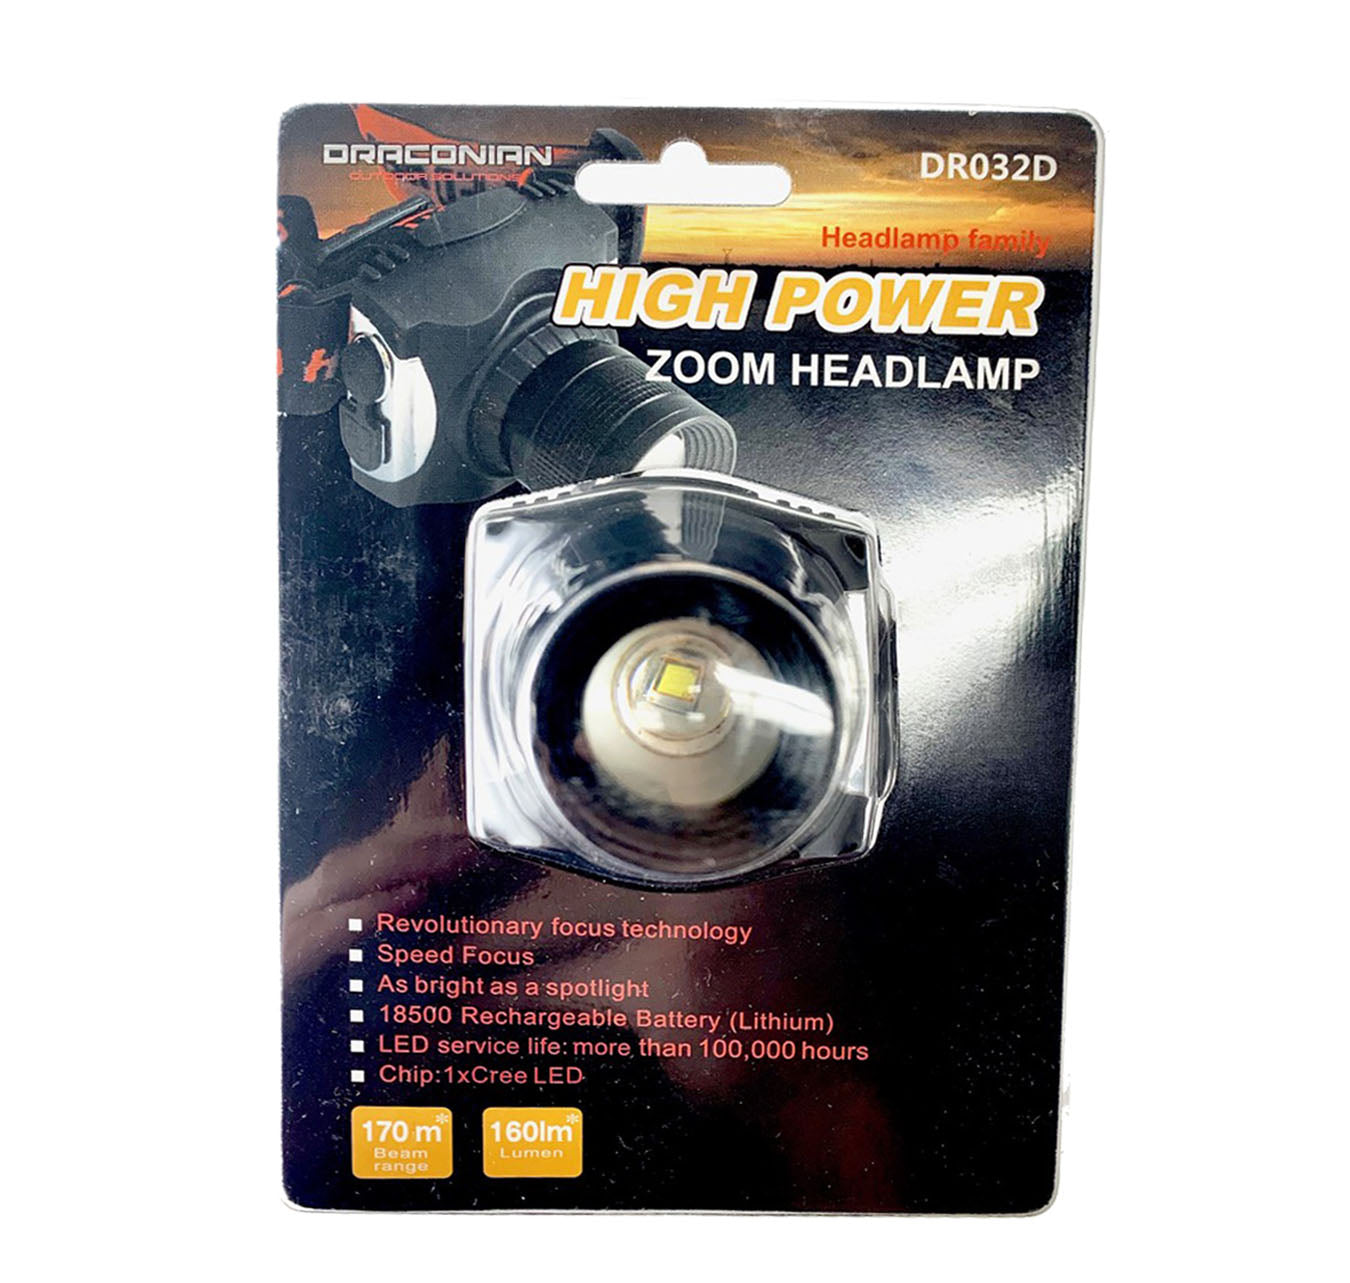 Draconian High Zoom Headlamp #DR032D